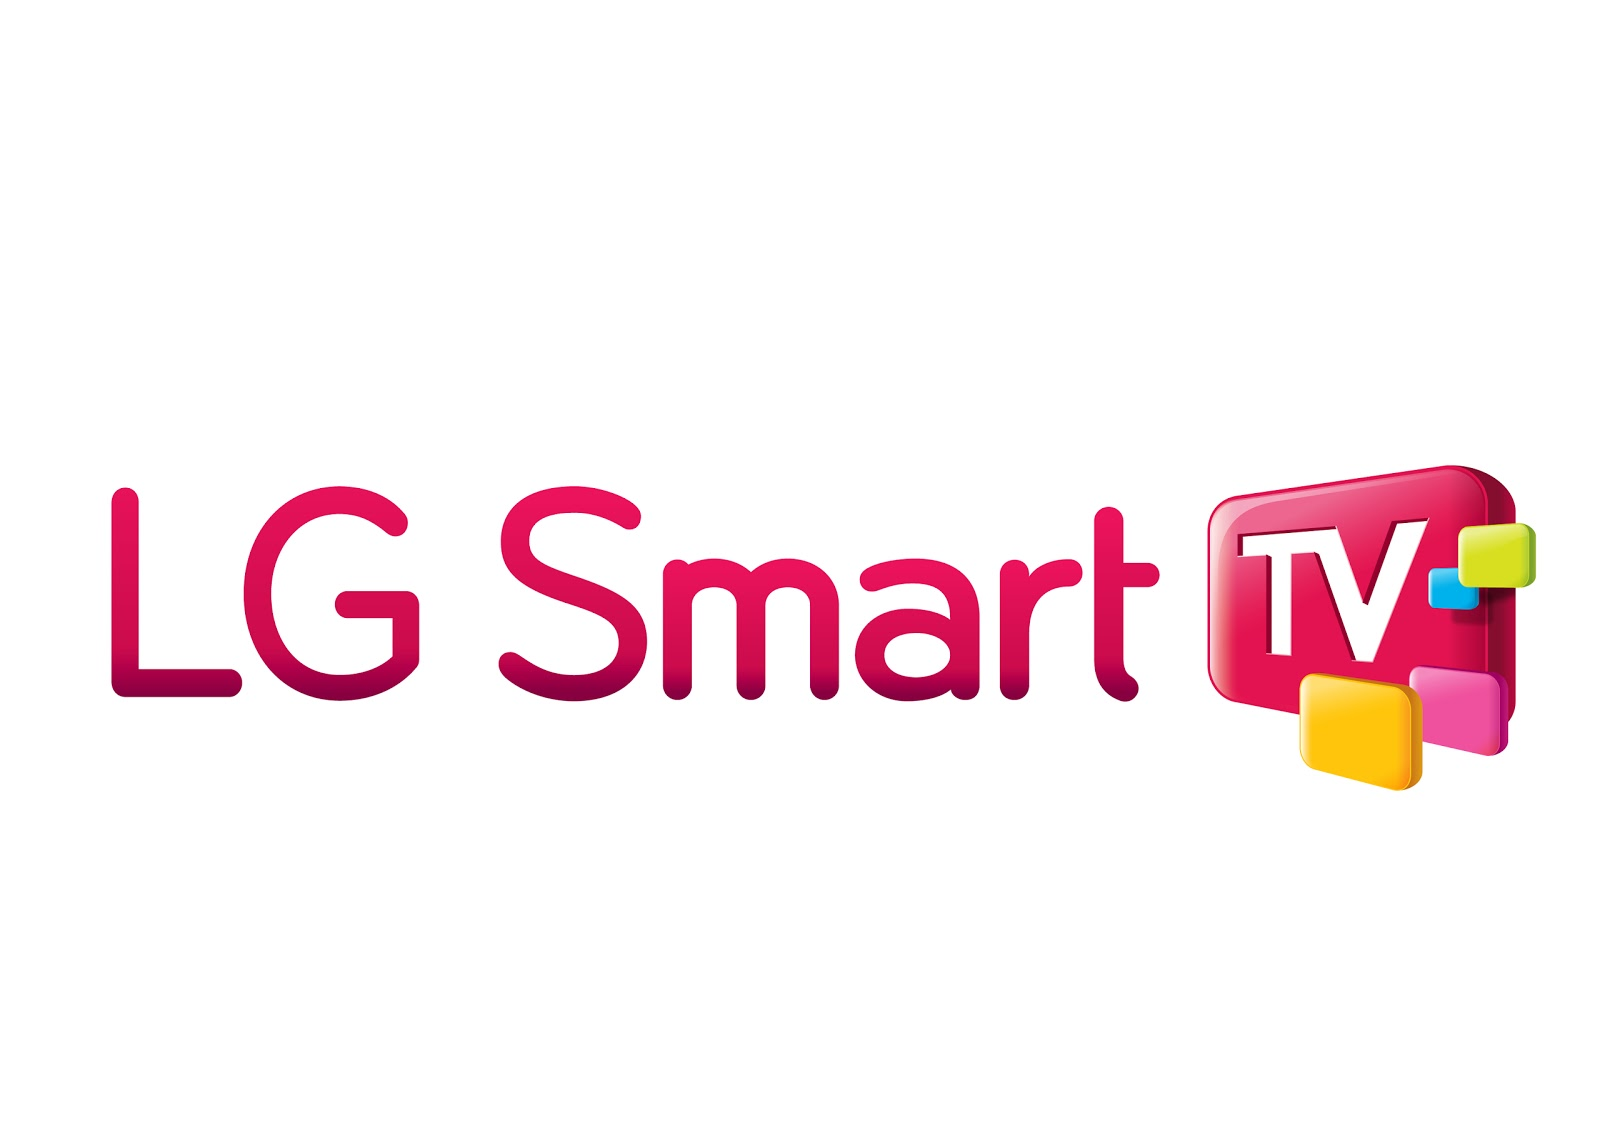 how to set lg smart tv to internet